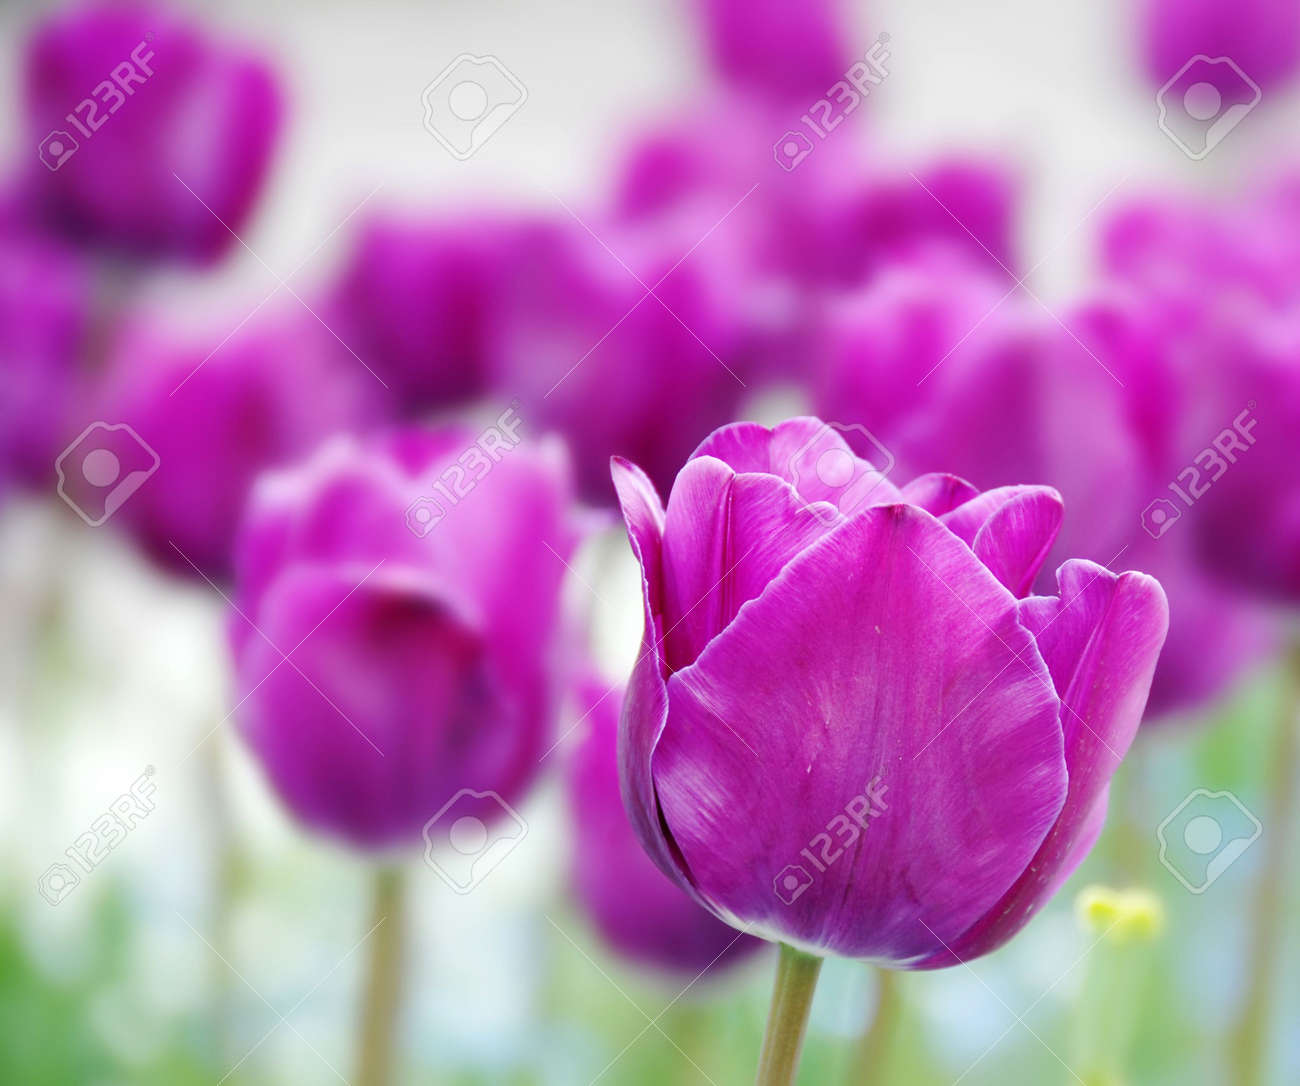 purple  tulips natural floral backgrounds outdoor Stock Photo - 4775663